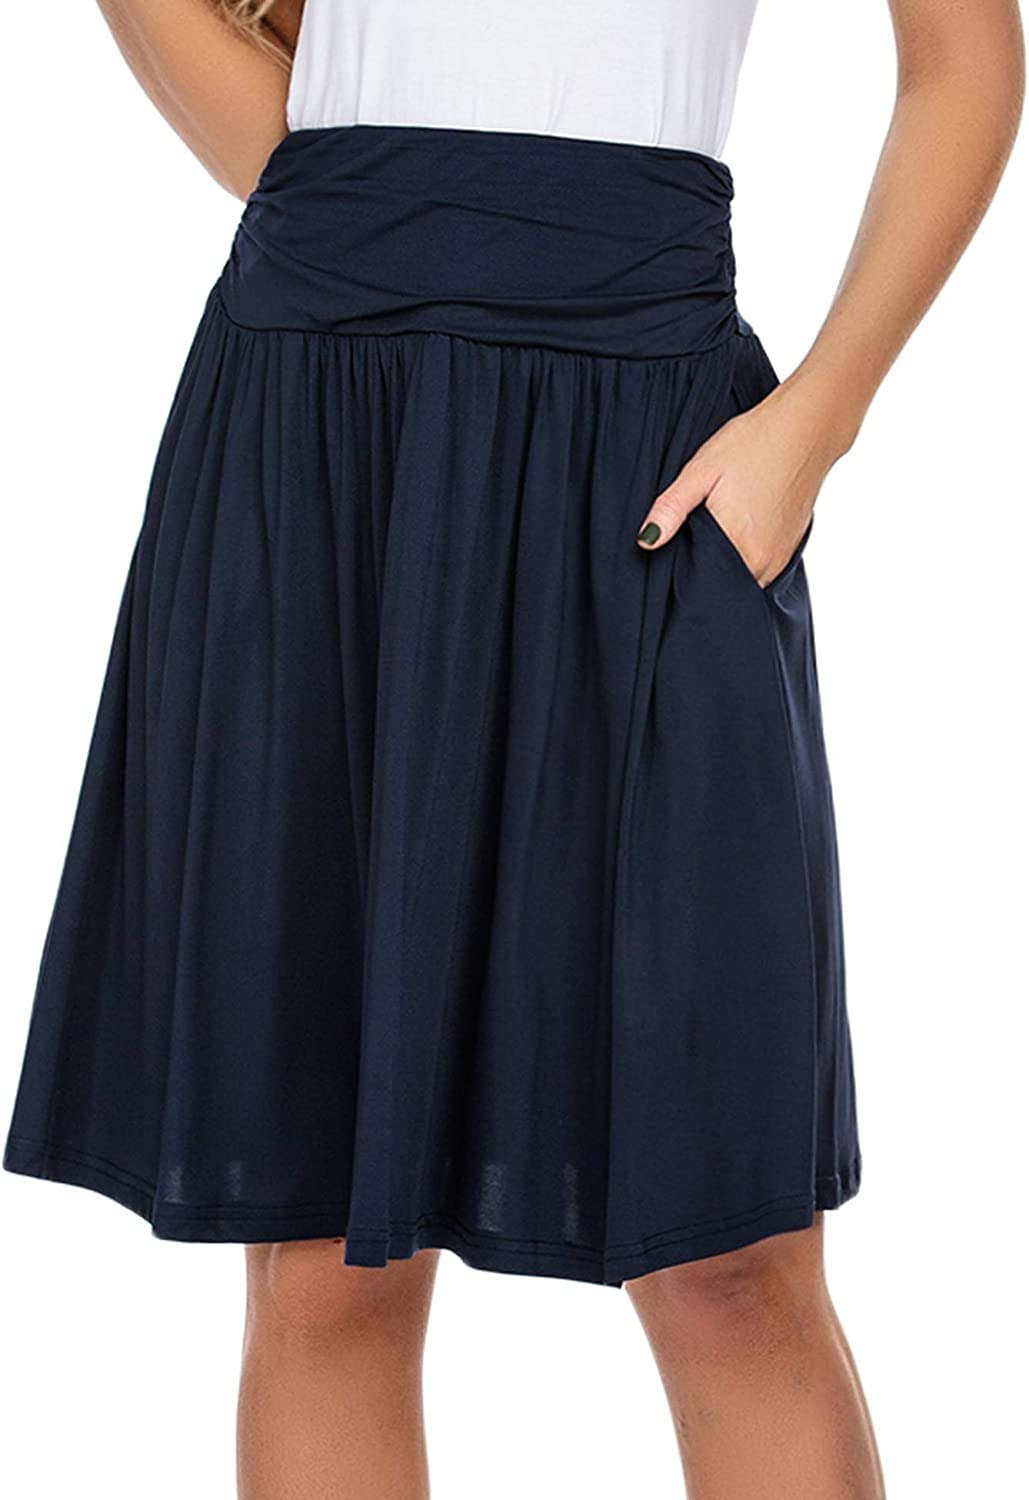 Wildtrest Women's Skirts with Pockets Midi Knee Length High Waist Plus Size Ruched Flowy Skirt